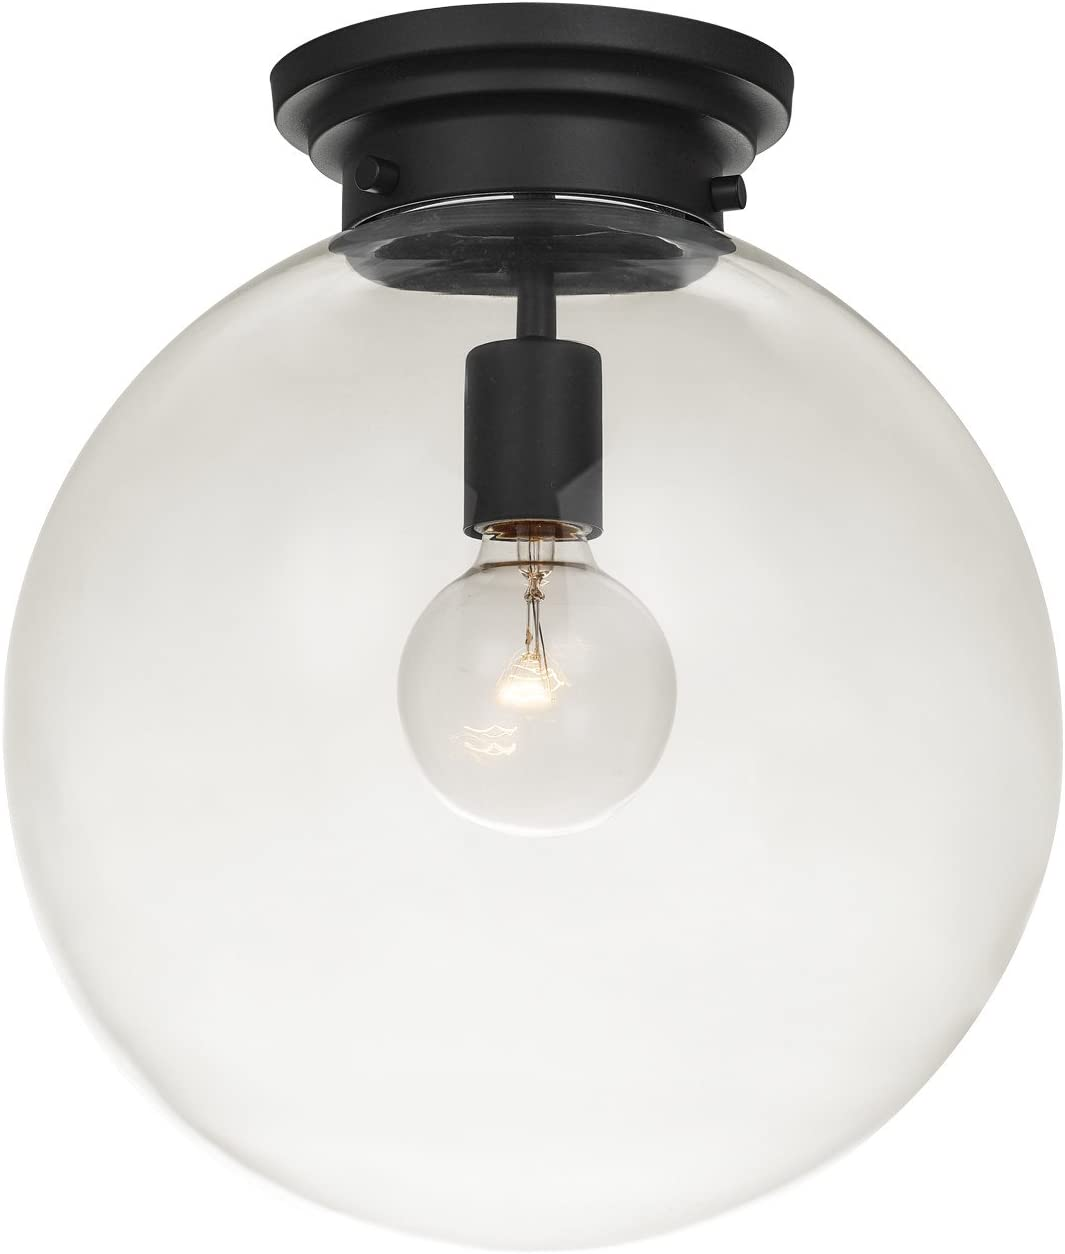 Globe Electric Portland 1-Light Semi-Flush Mount Ceiling Light, Black Finish, Clear Glass Shade 65954